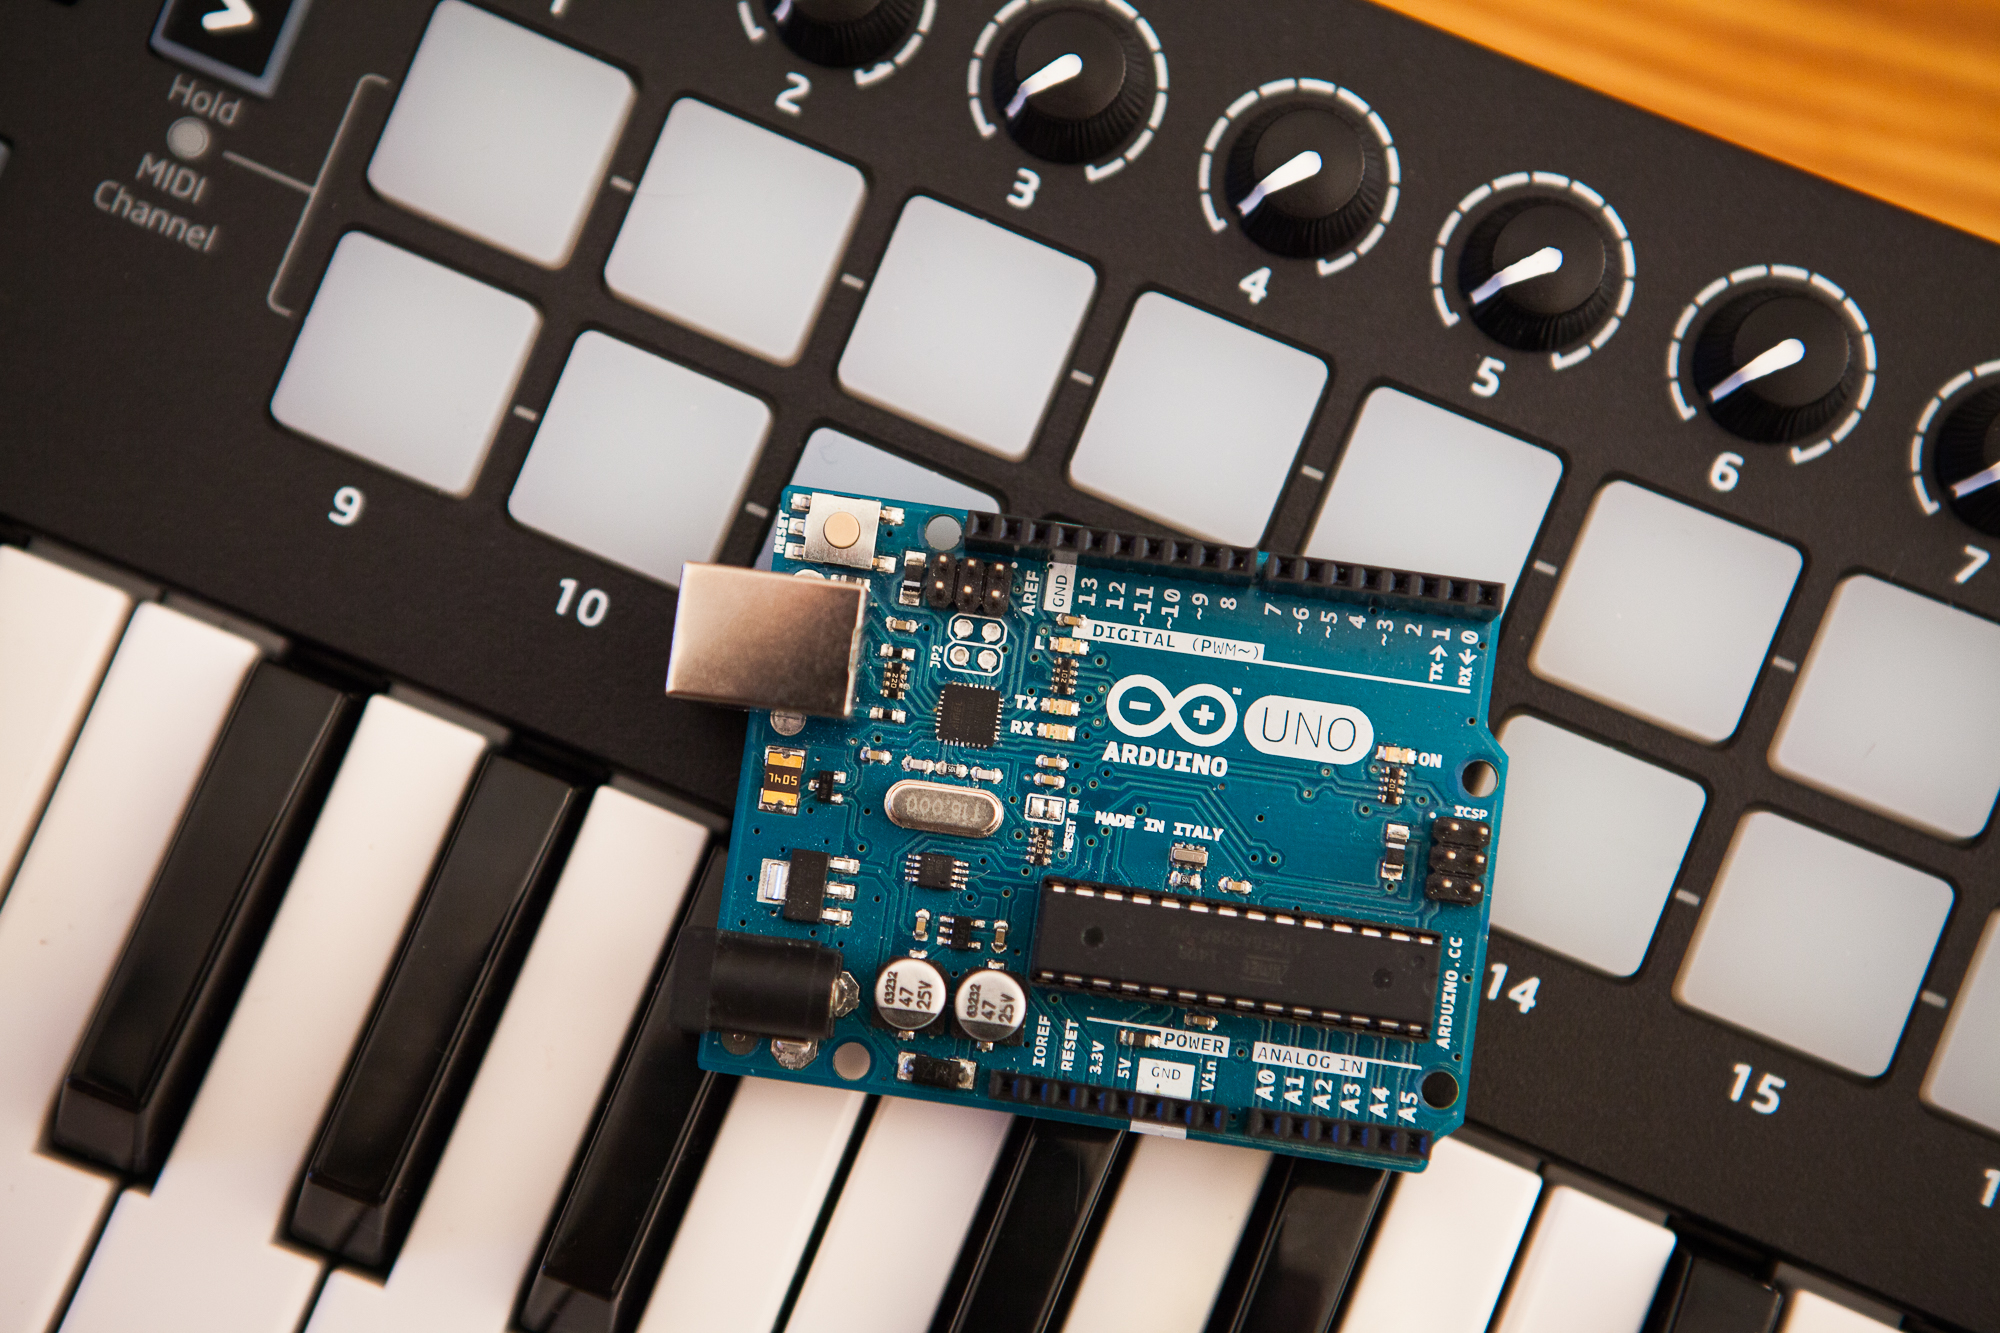 How to Control Anything on Arduino Using MIDI